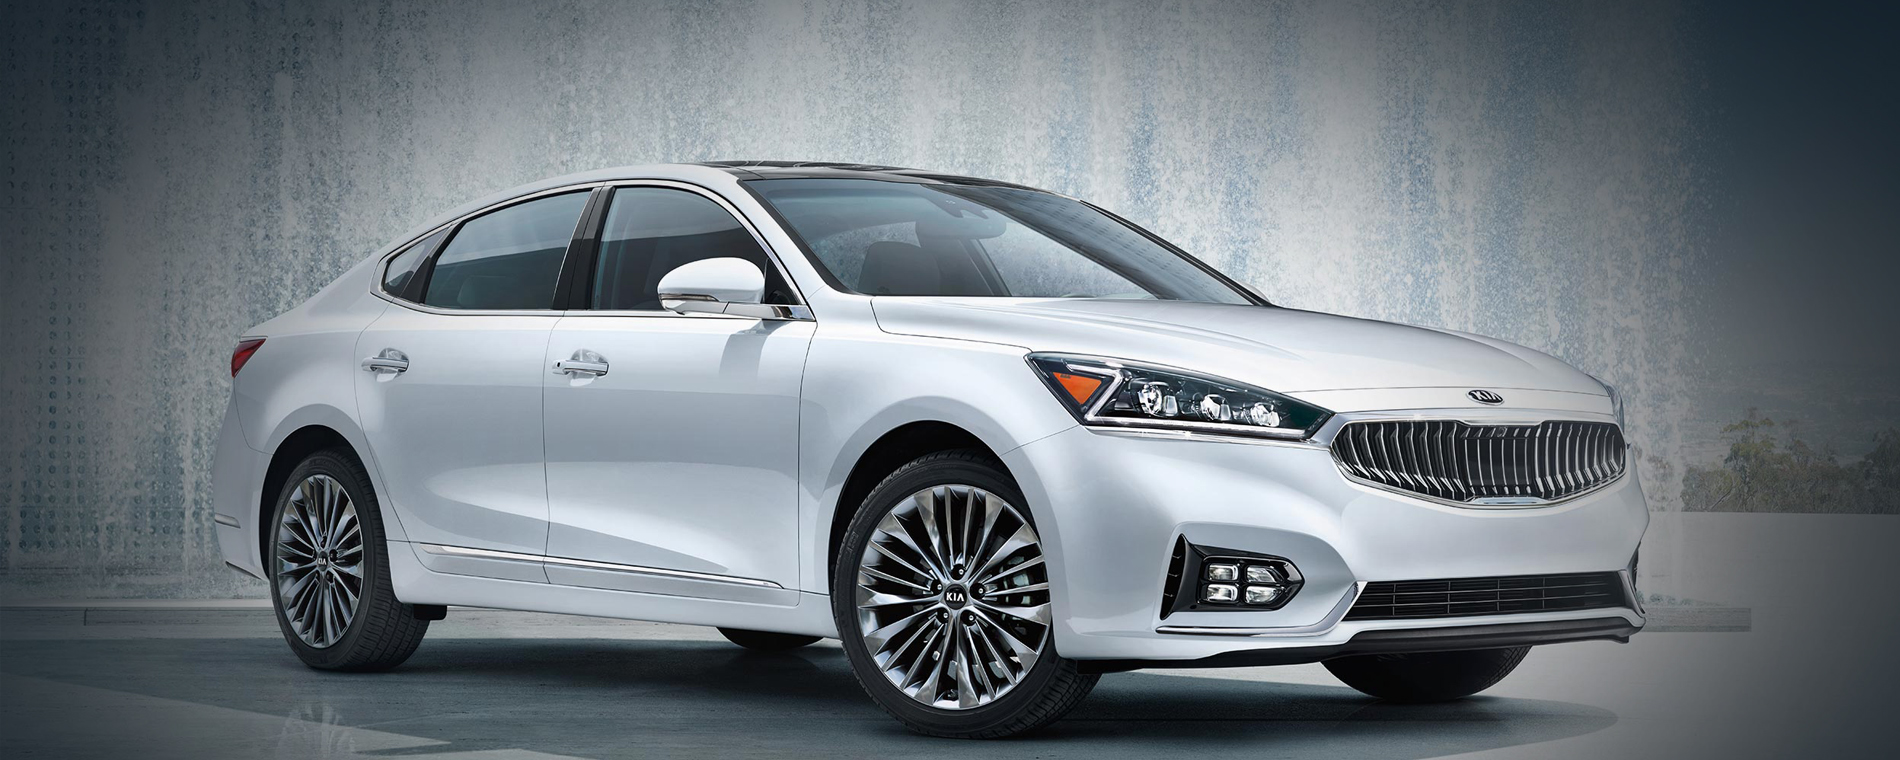 2019 Kia Cadenza: Kia Accessory Guide